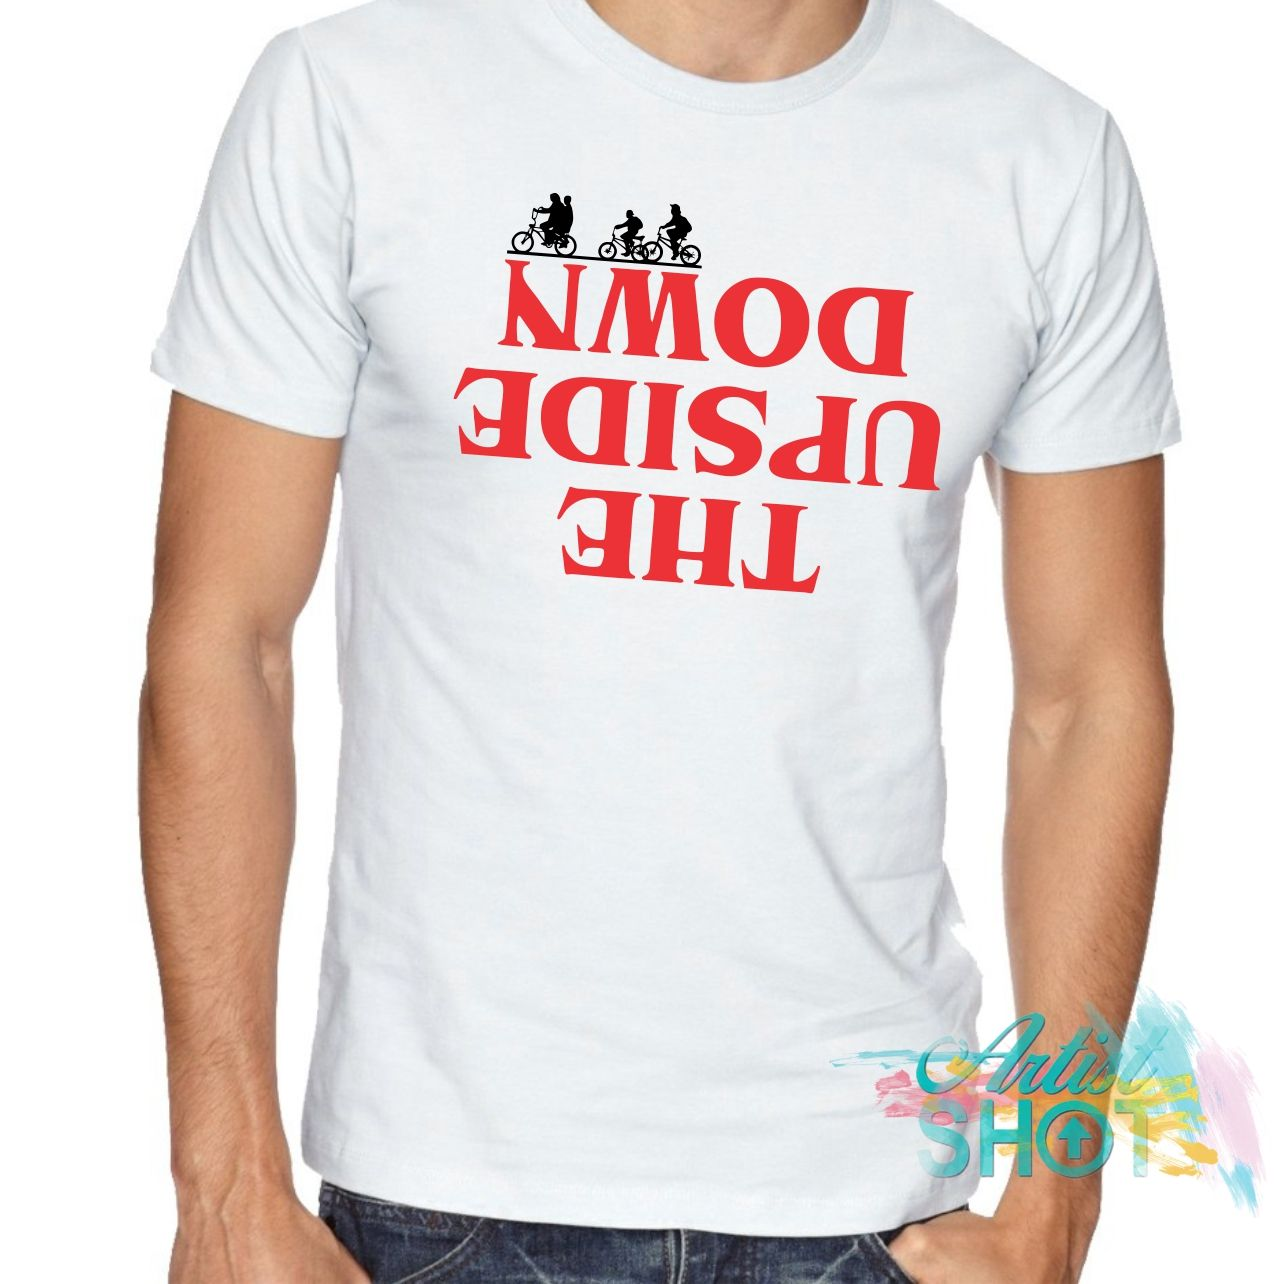 97003be1a The Upside Down 2 T-shirt By Sbm052017 | Artistshot